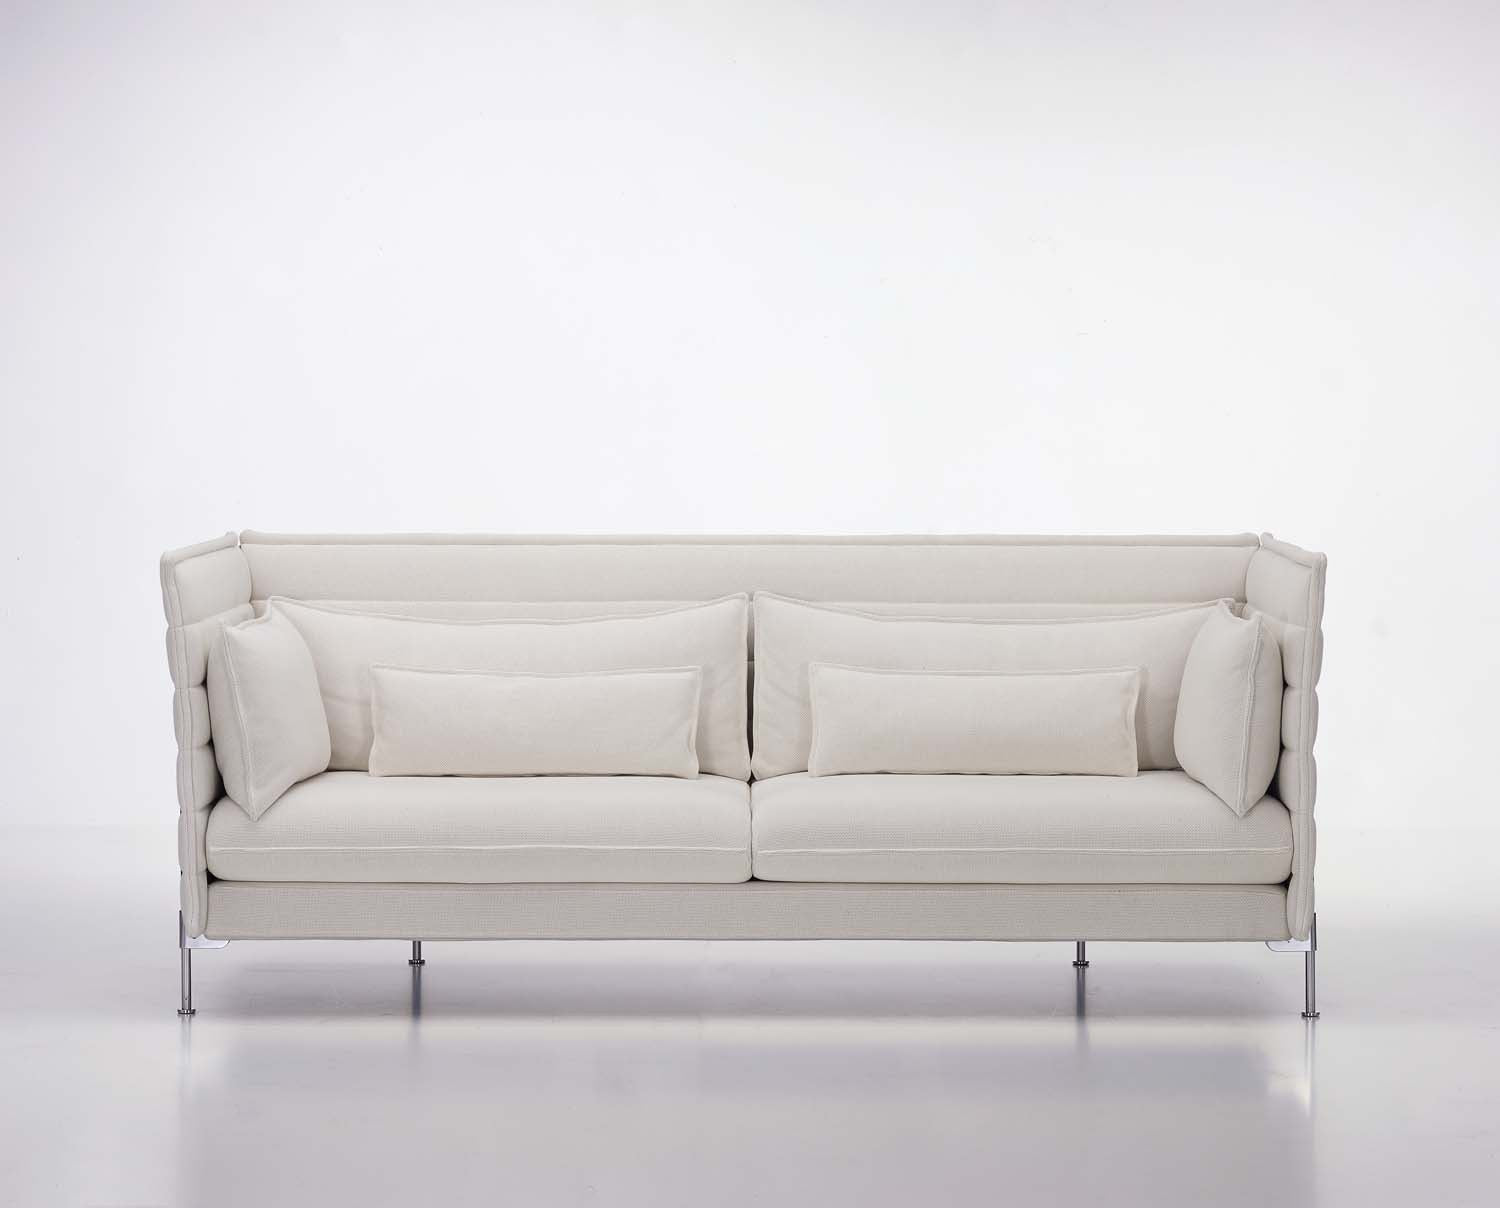 Incredible Sofas Couch Potato Company Download Free Architecture Designs Scobabritishbridgeorg